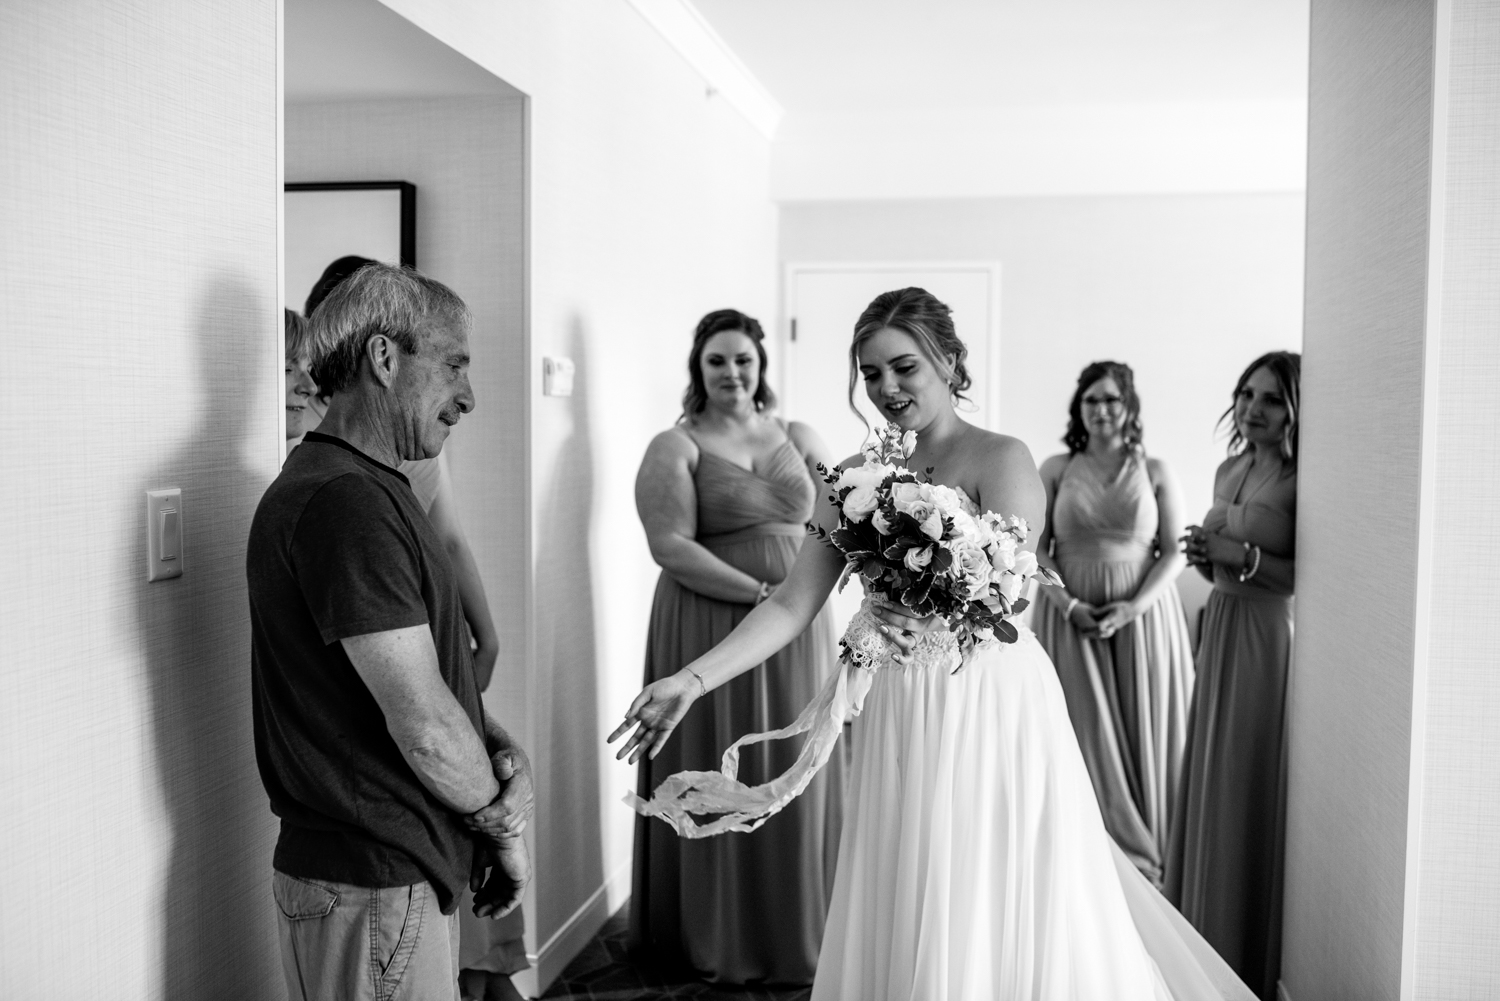 Downtown-Kamloops-Wedding-19.jpg